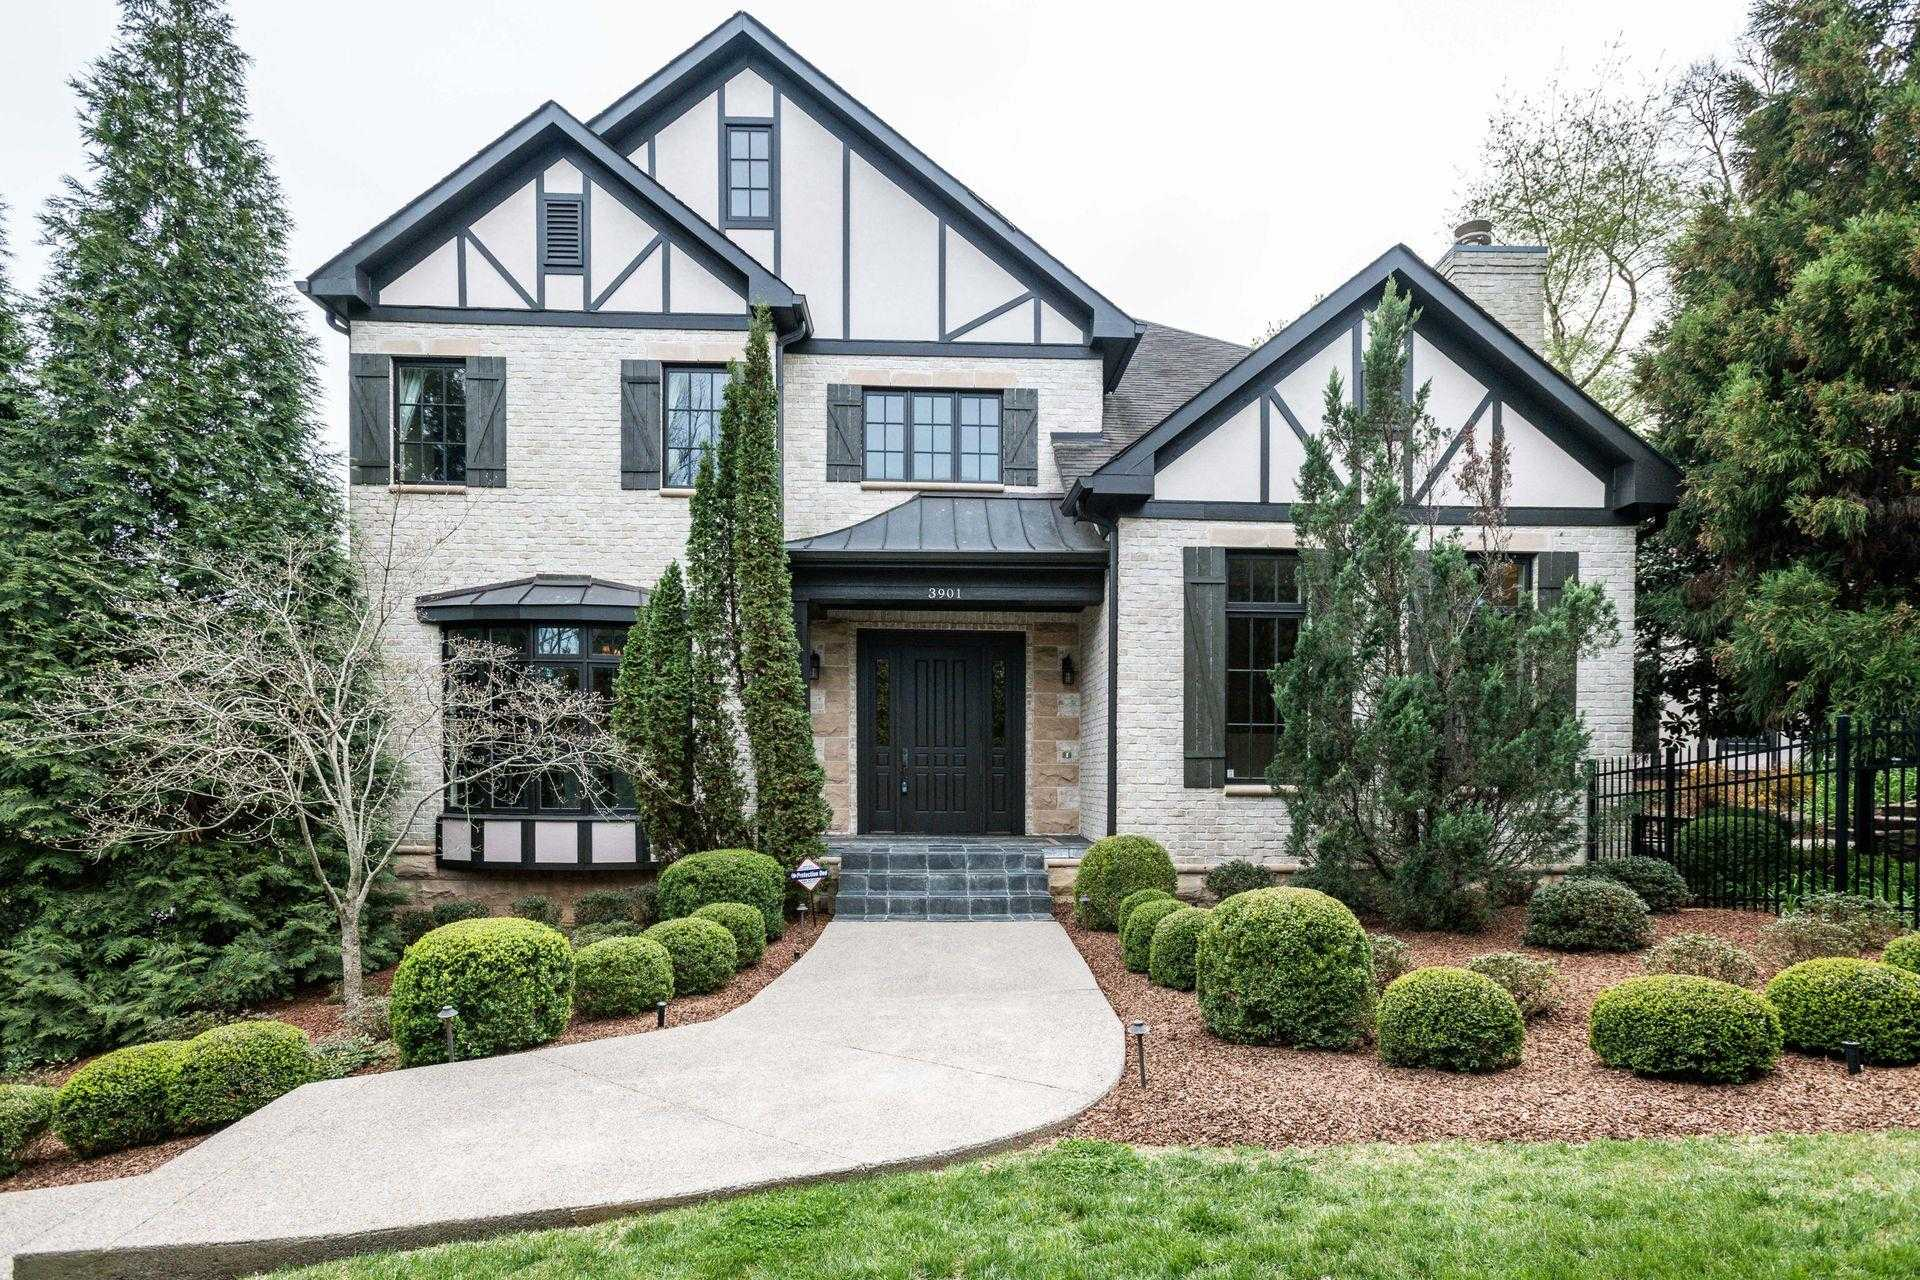 $1,790,000 - 5Br/5Ba -  for Sale in Green Hills, Nashville